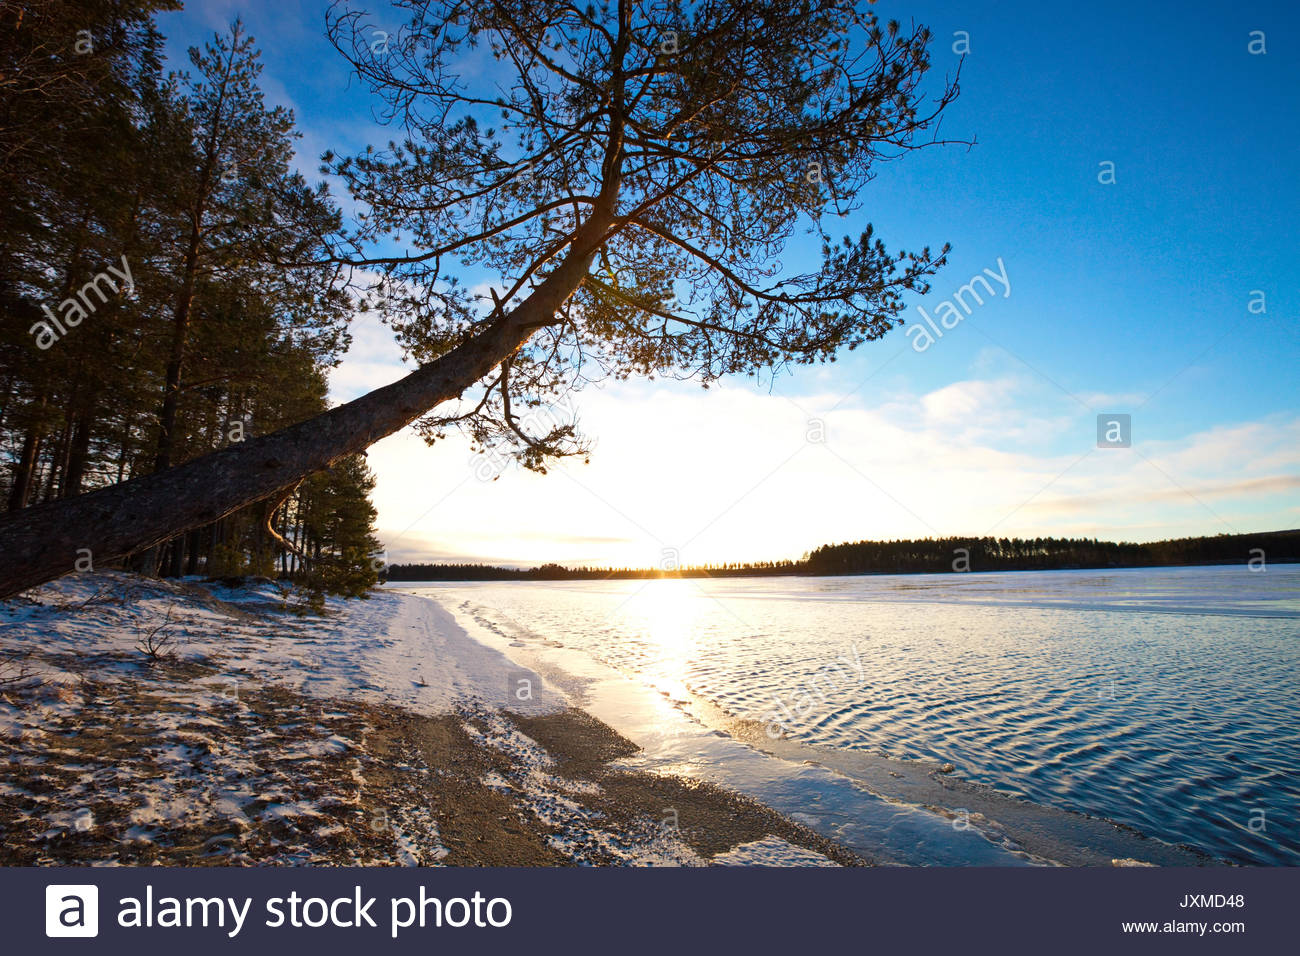 Pine tree growing at the sandy shore of a quiet lake in early winter. - Stock Image